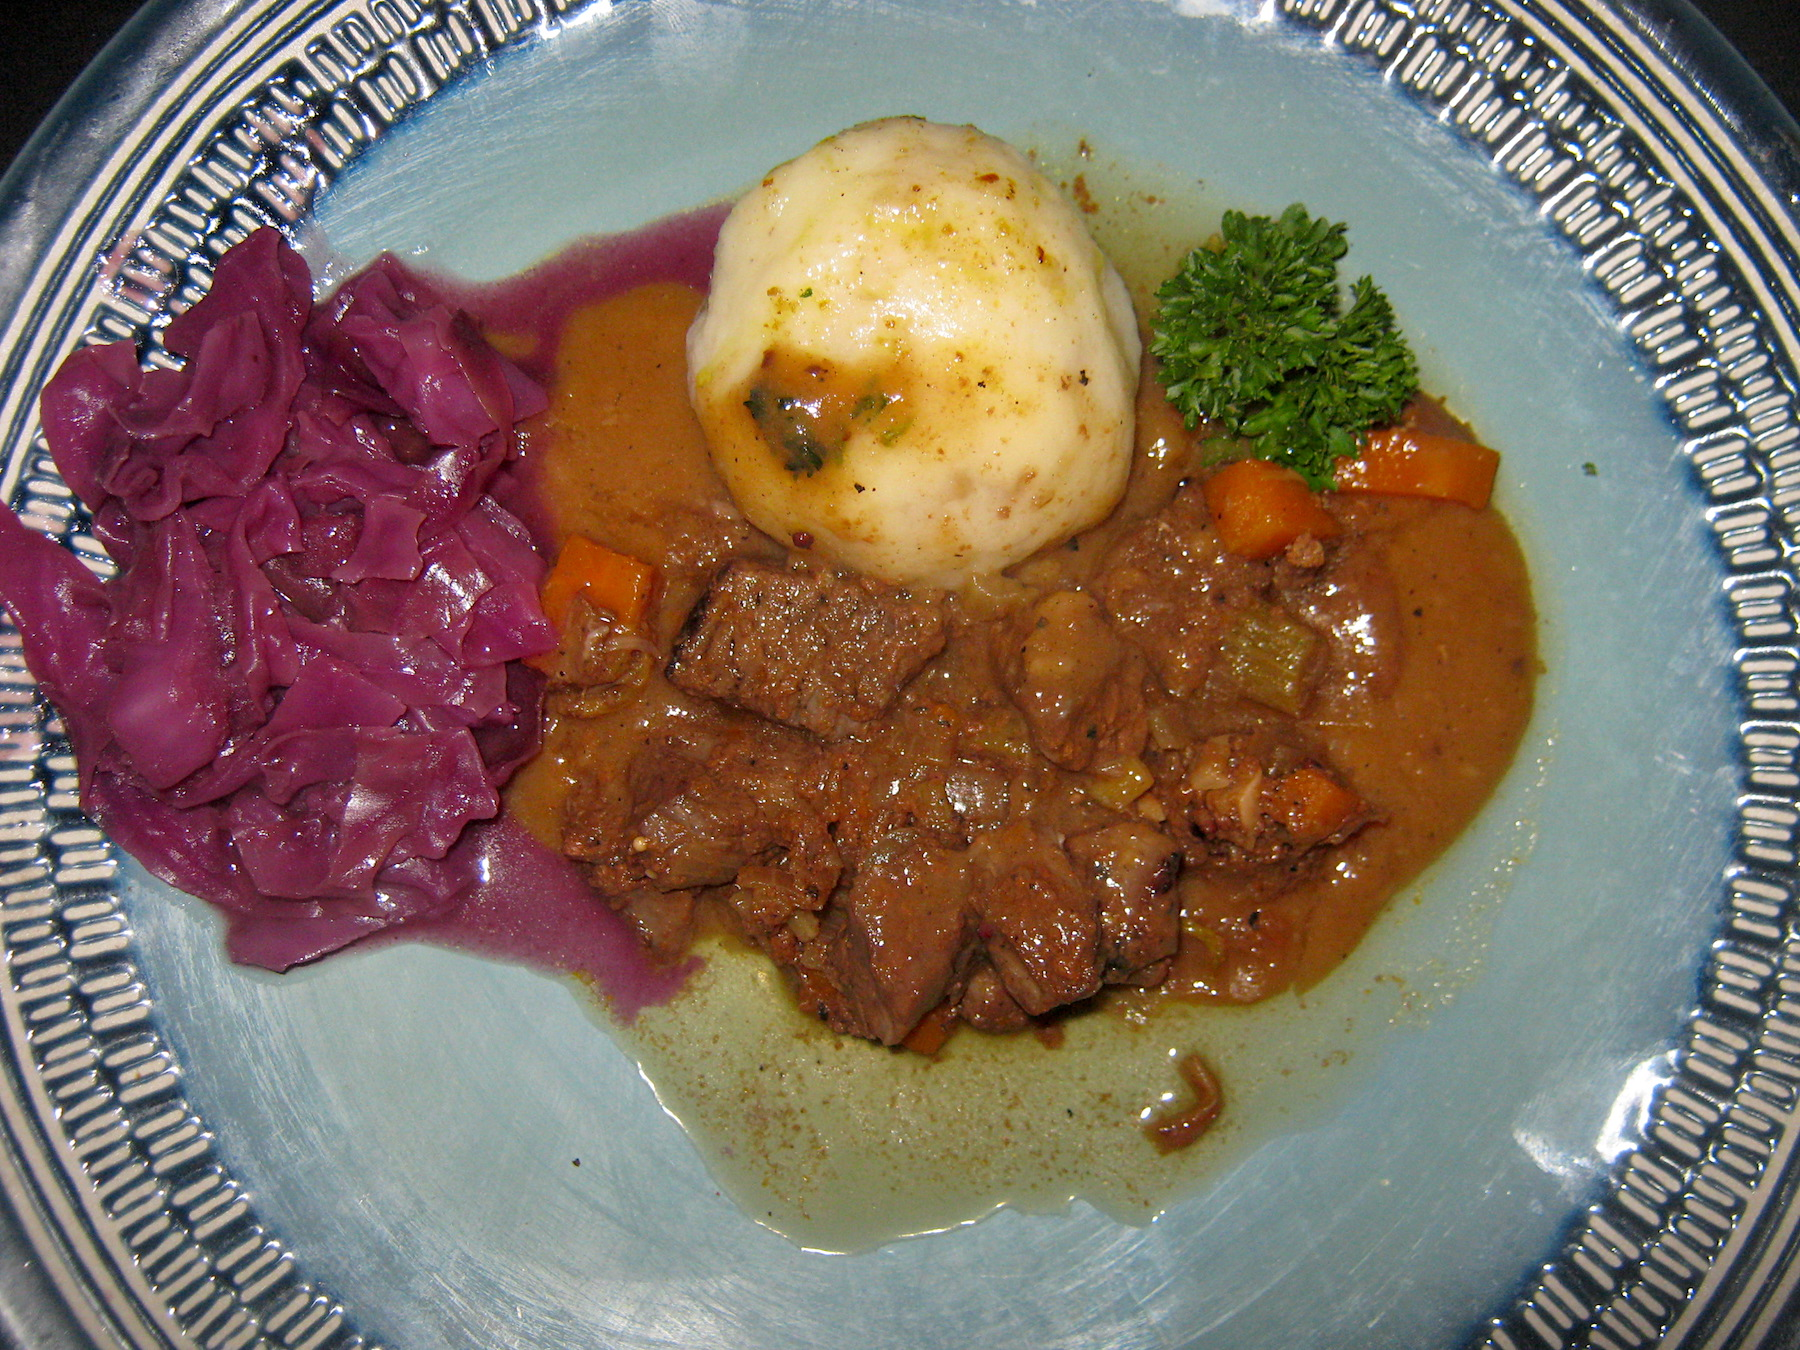 German style Sour marinated beef with potato dumpling, gravy and red cabbage